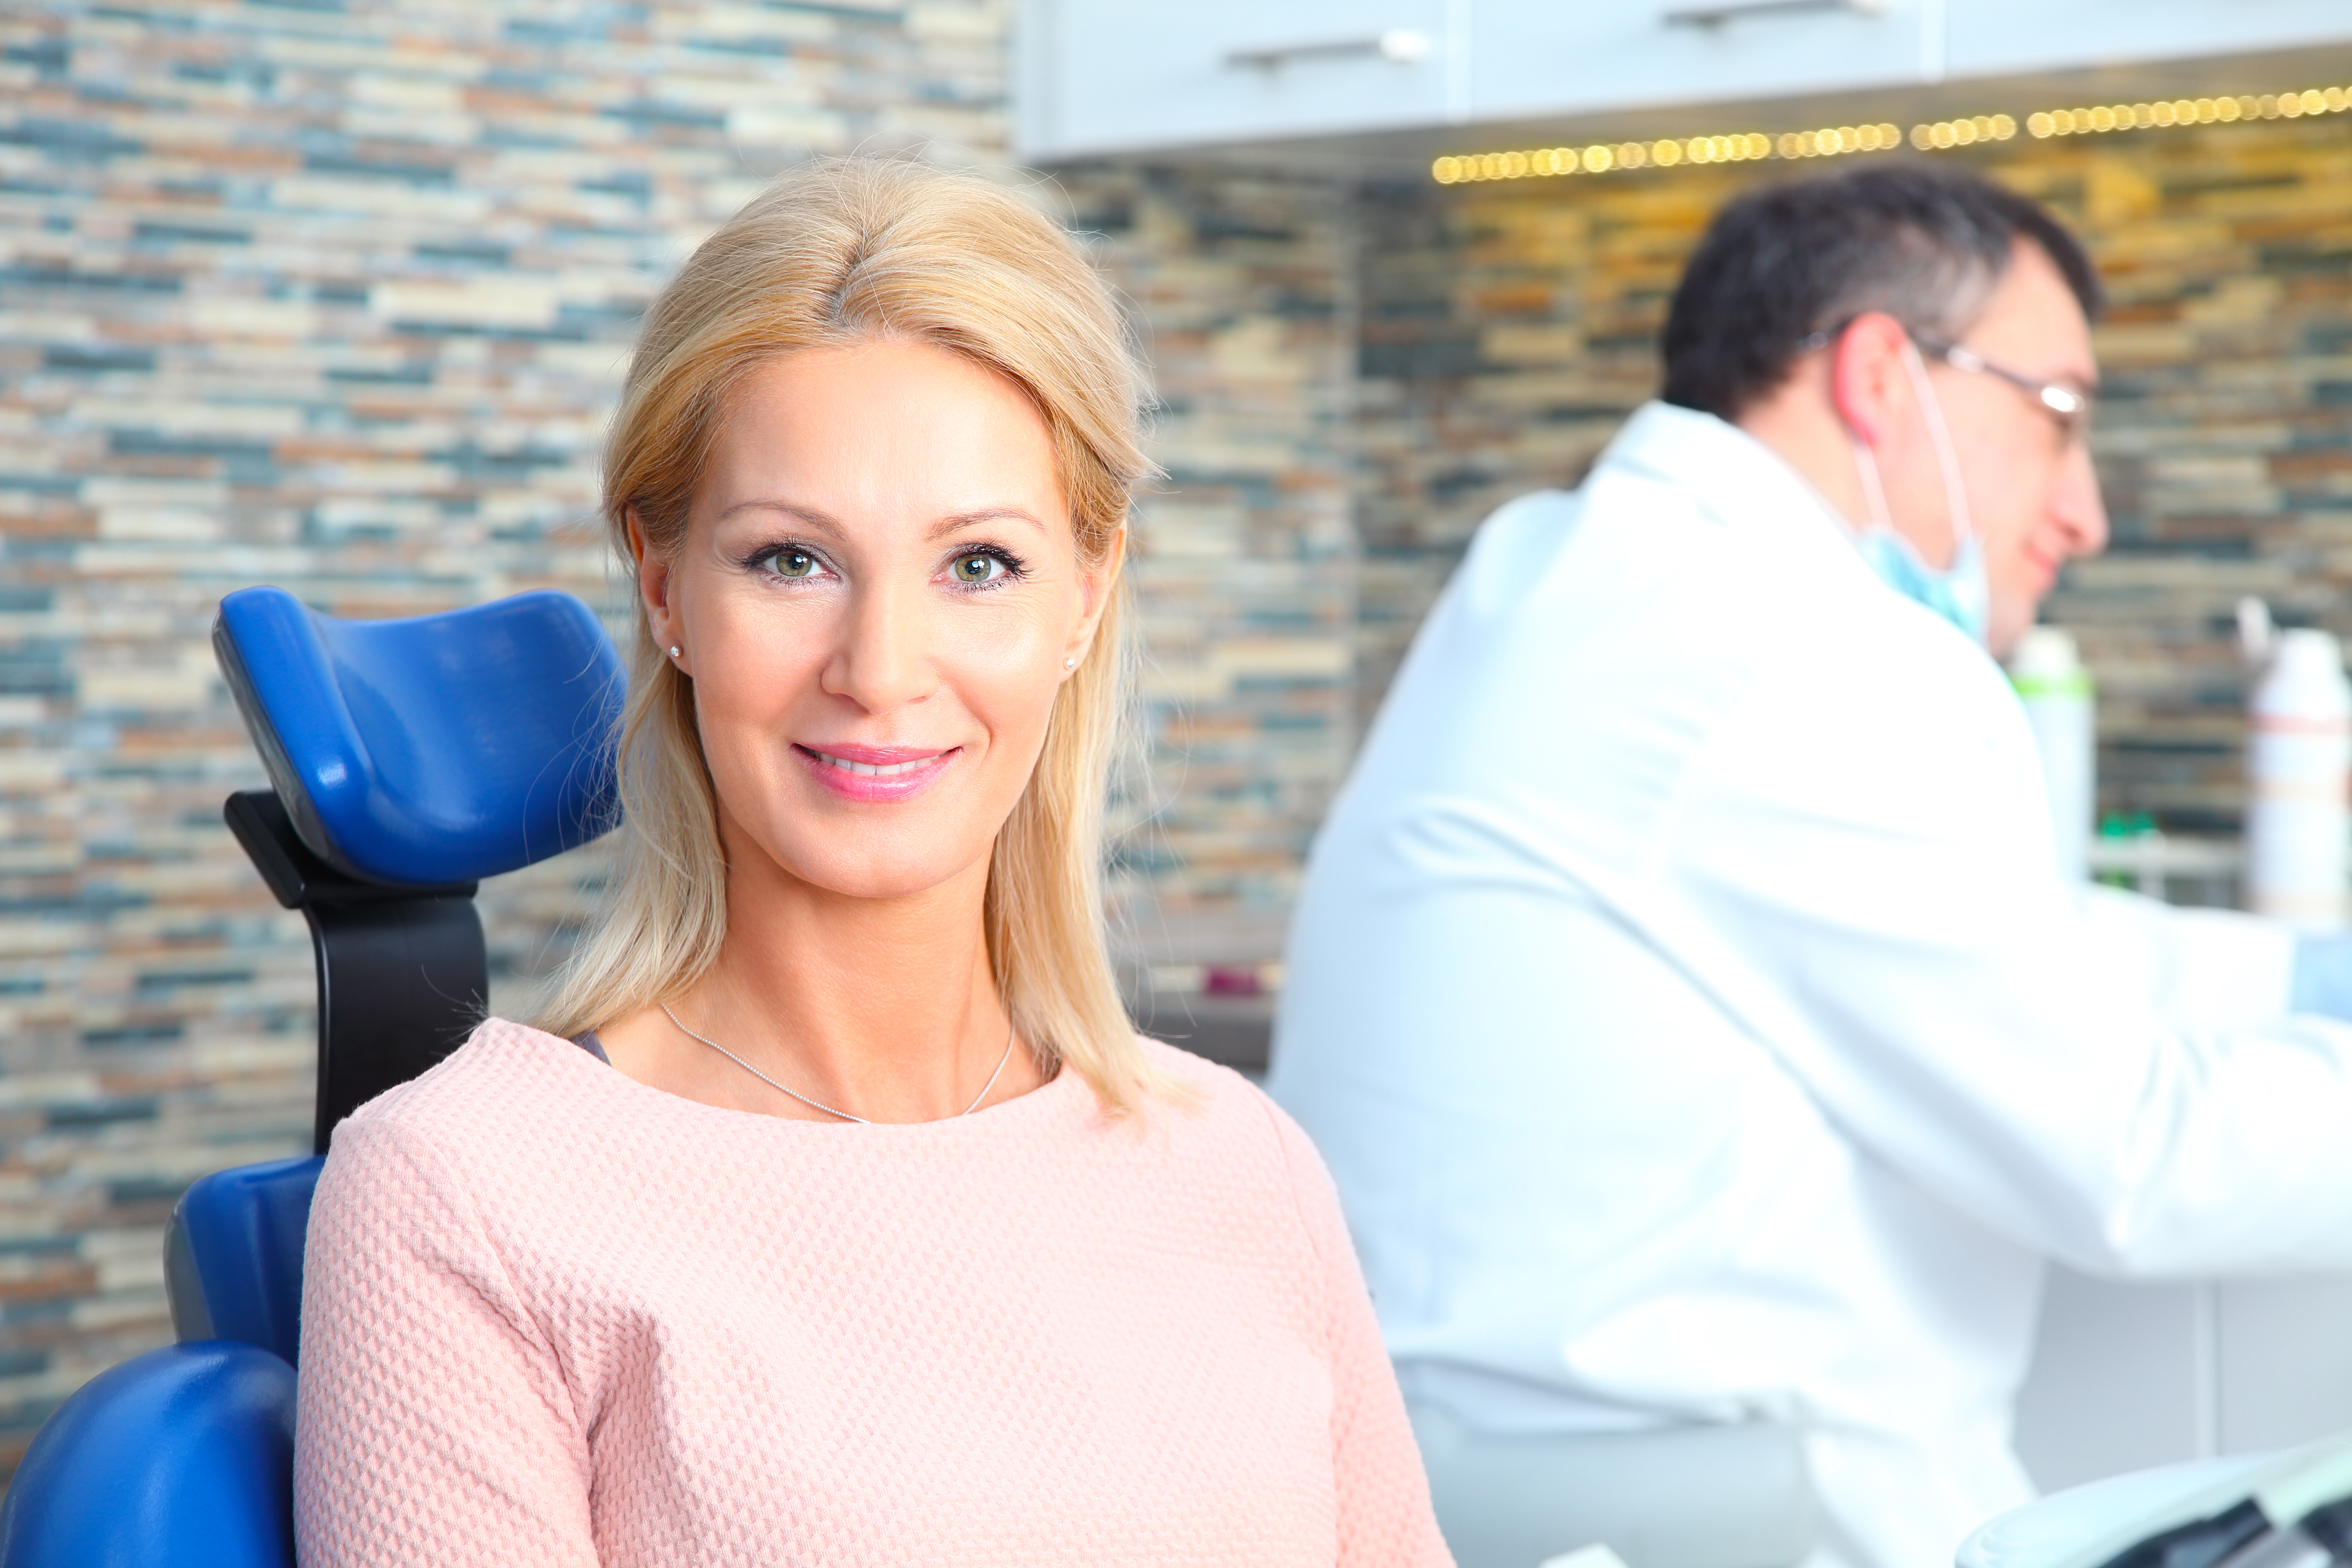 what is a tooth extraction west palm beach?